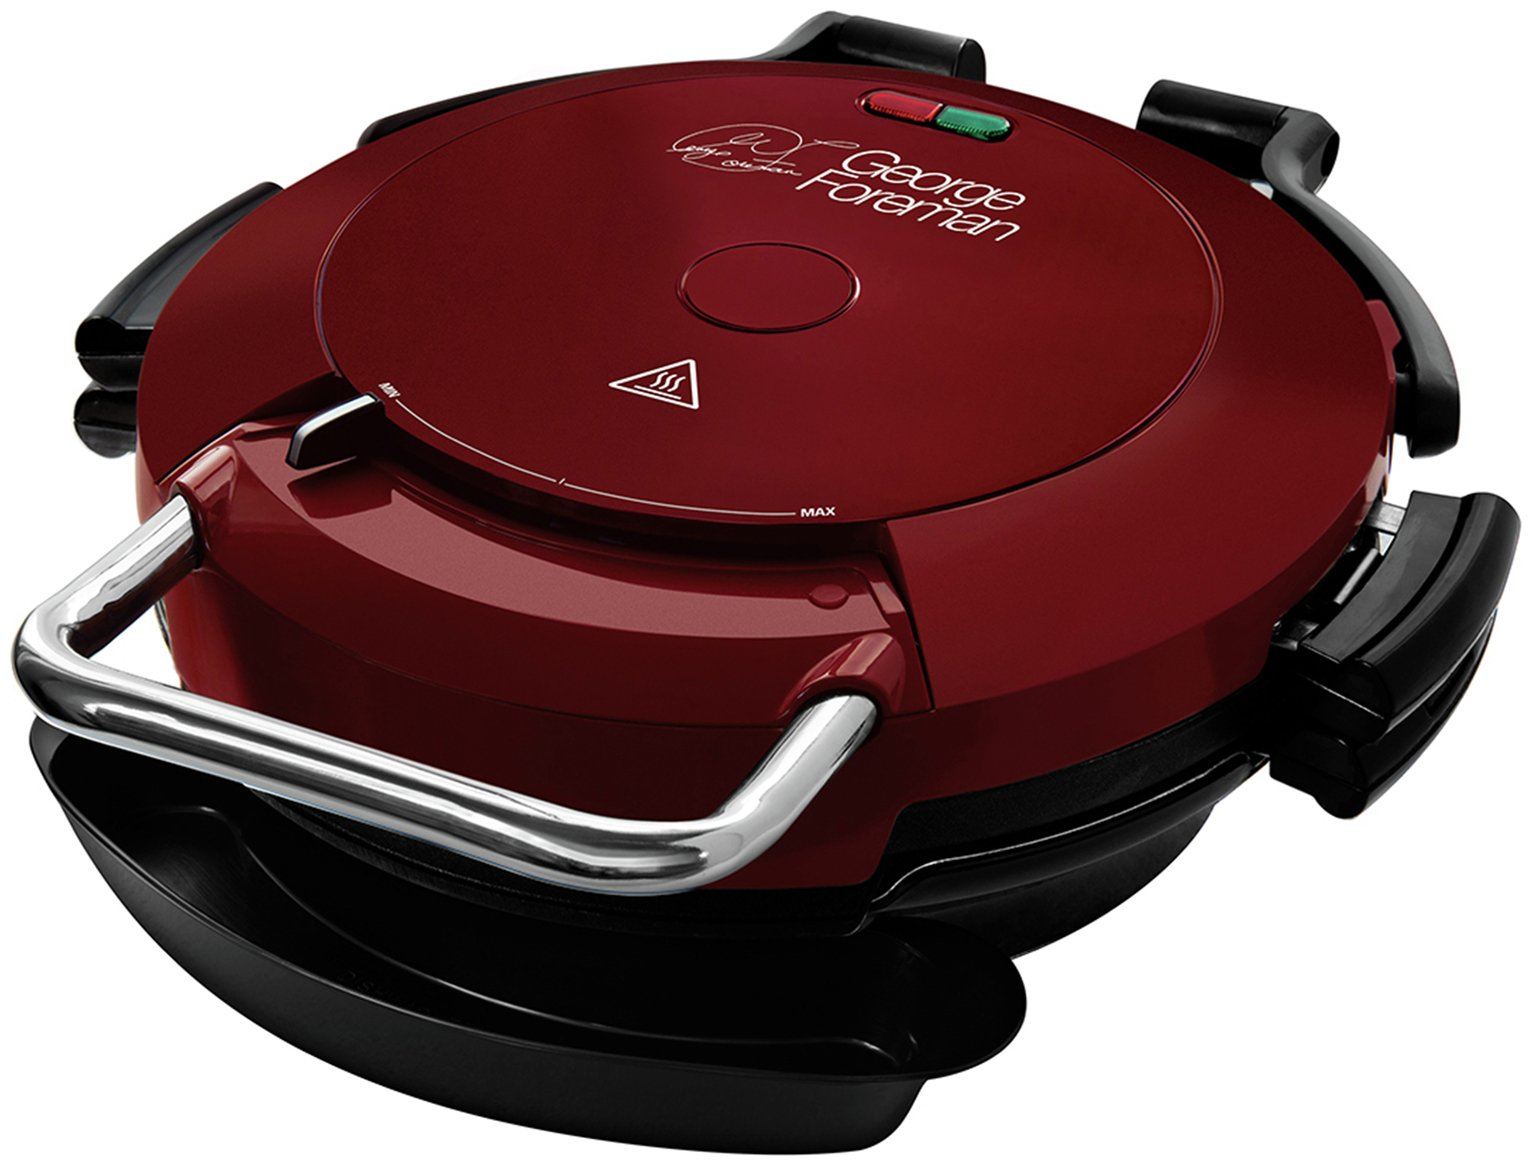 Image of George Foreman 360 Grill 24640